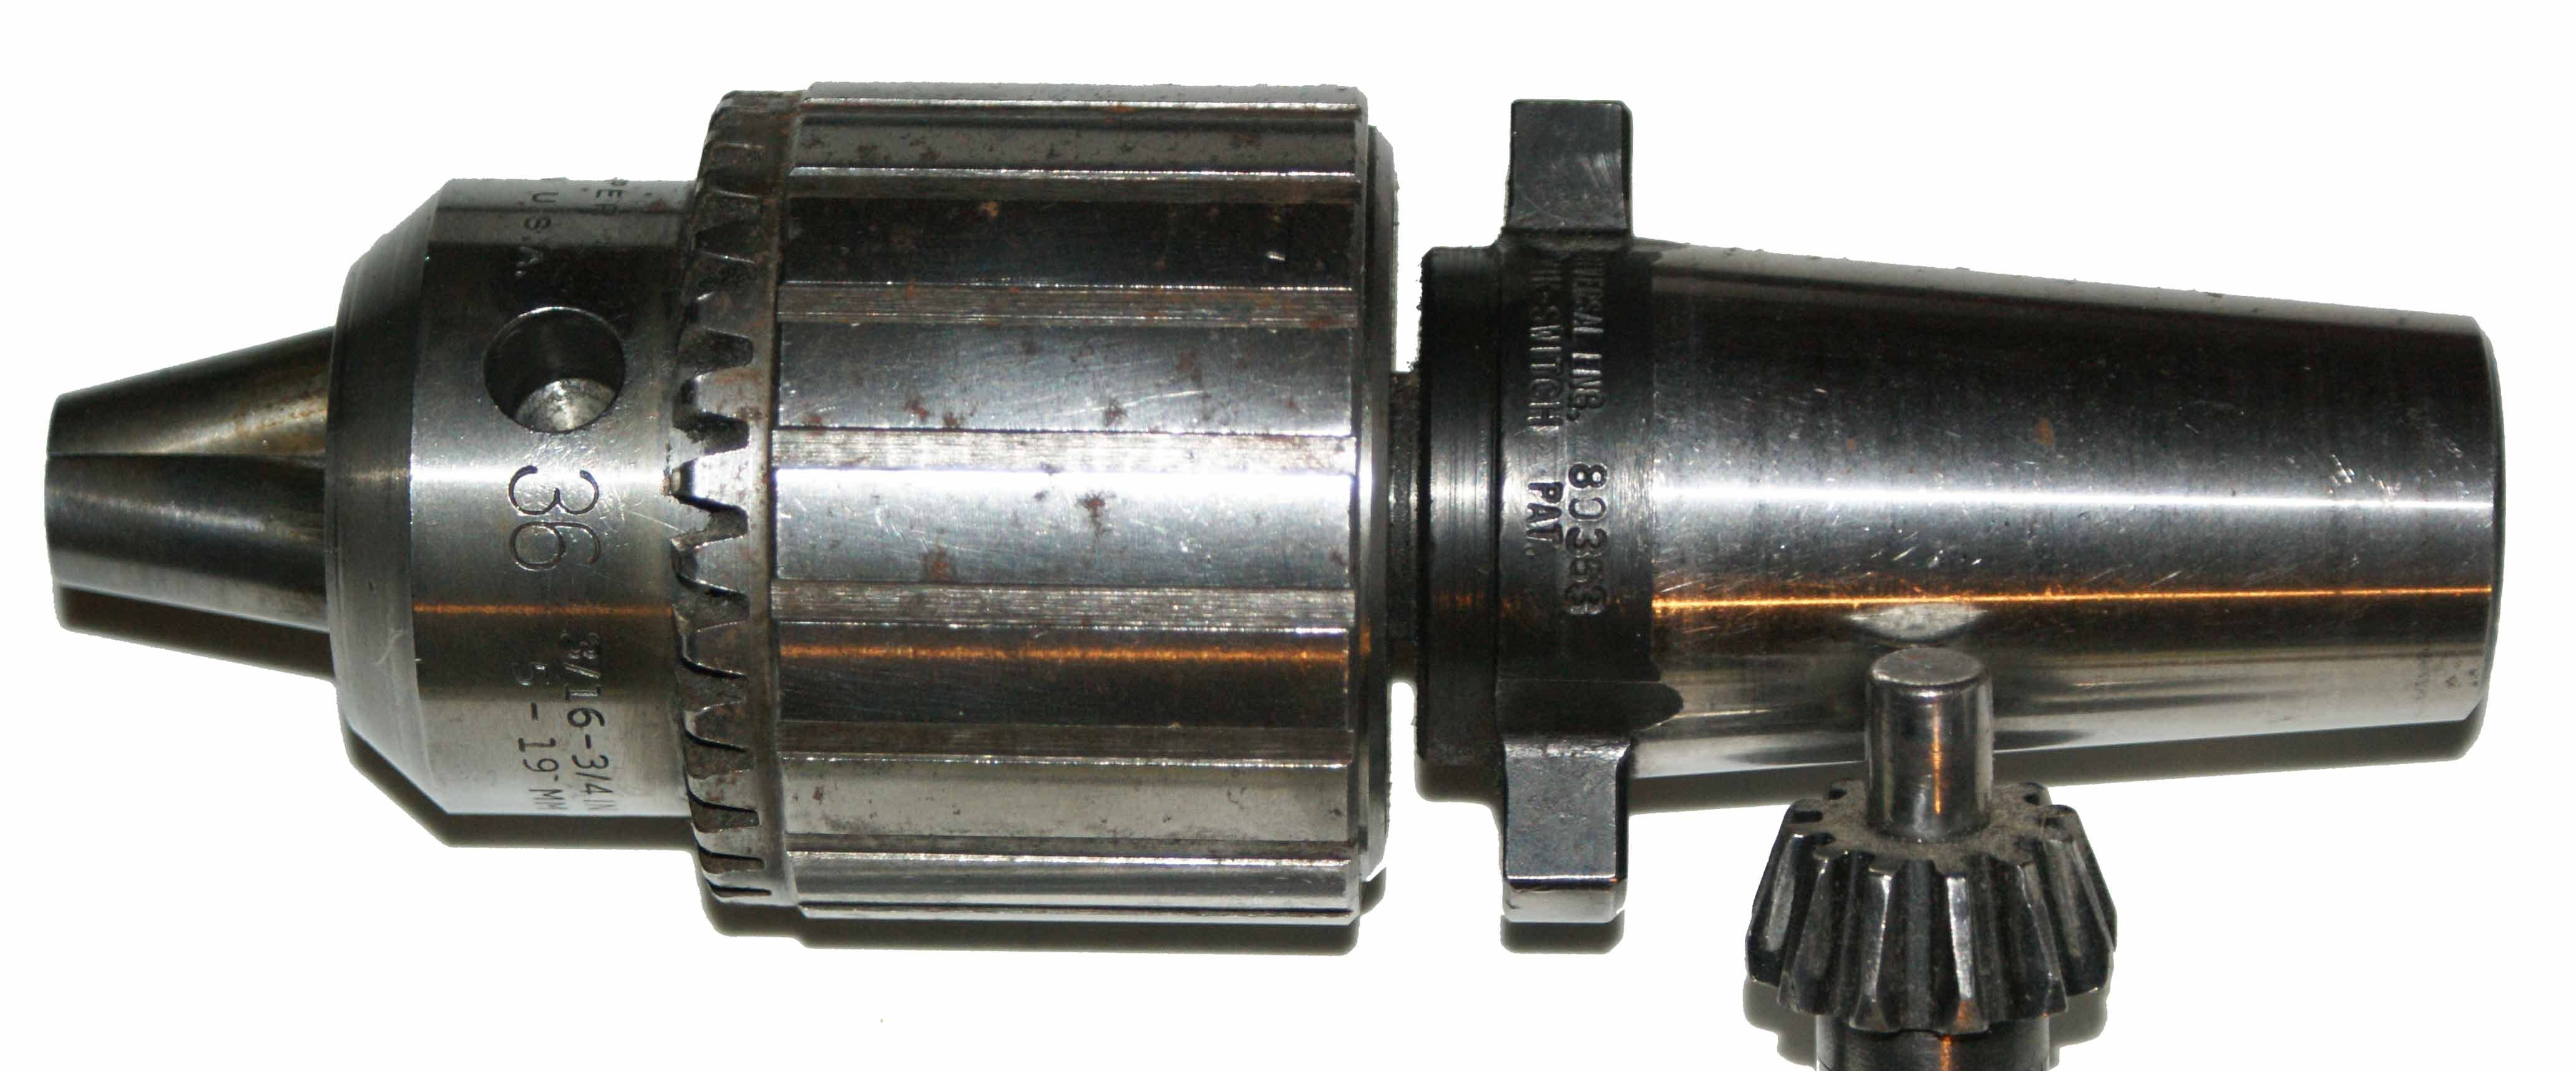 Kwik-Switch 300 80353 w- Jacobs 36 Drill Chuck, Key